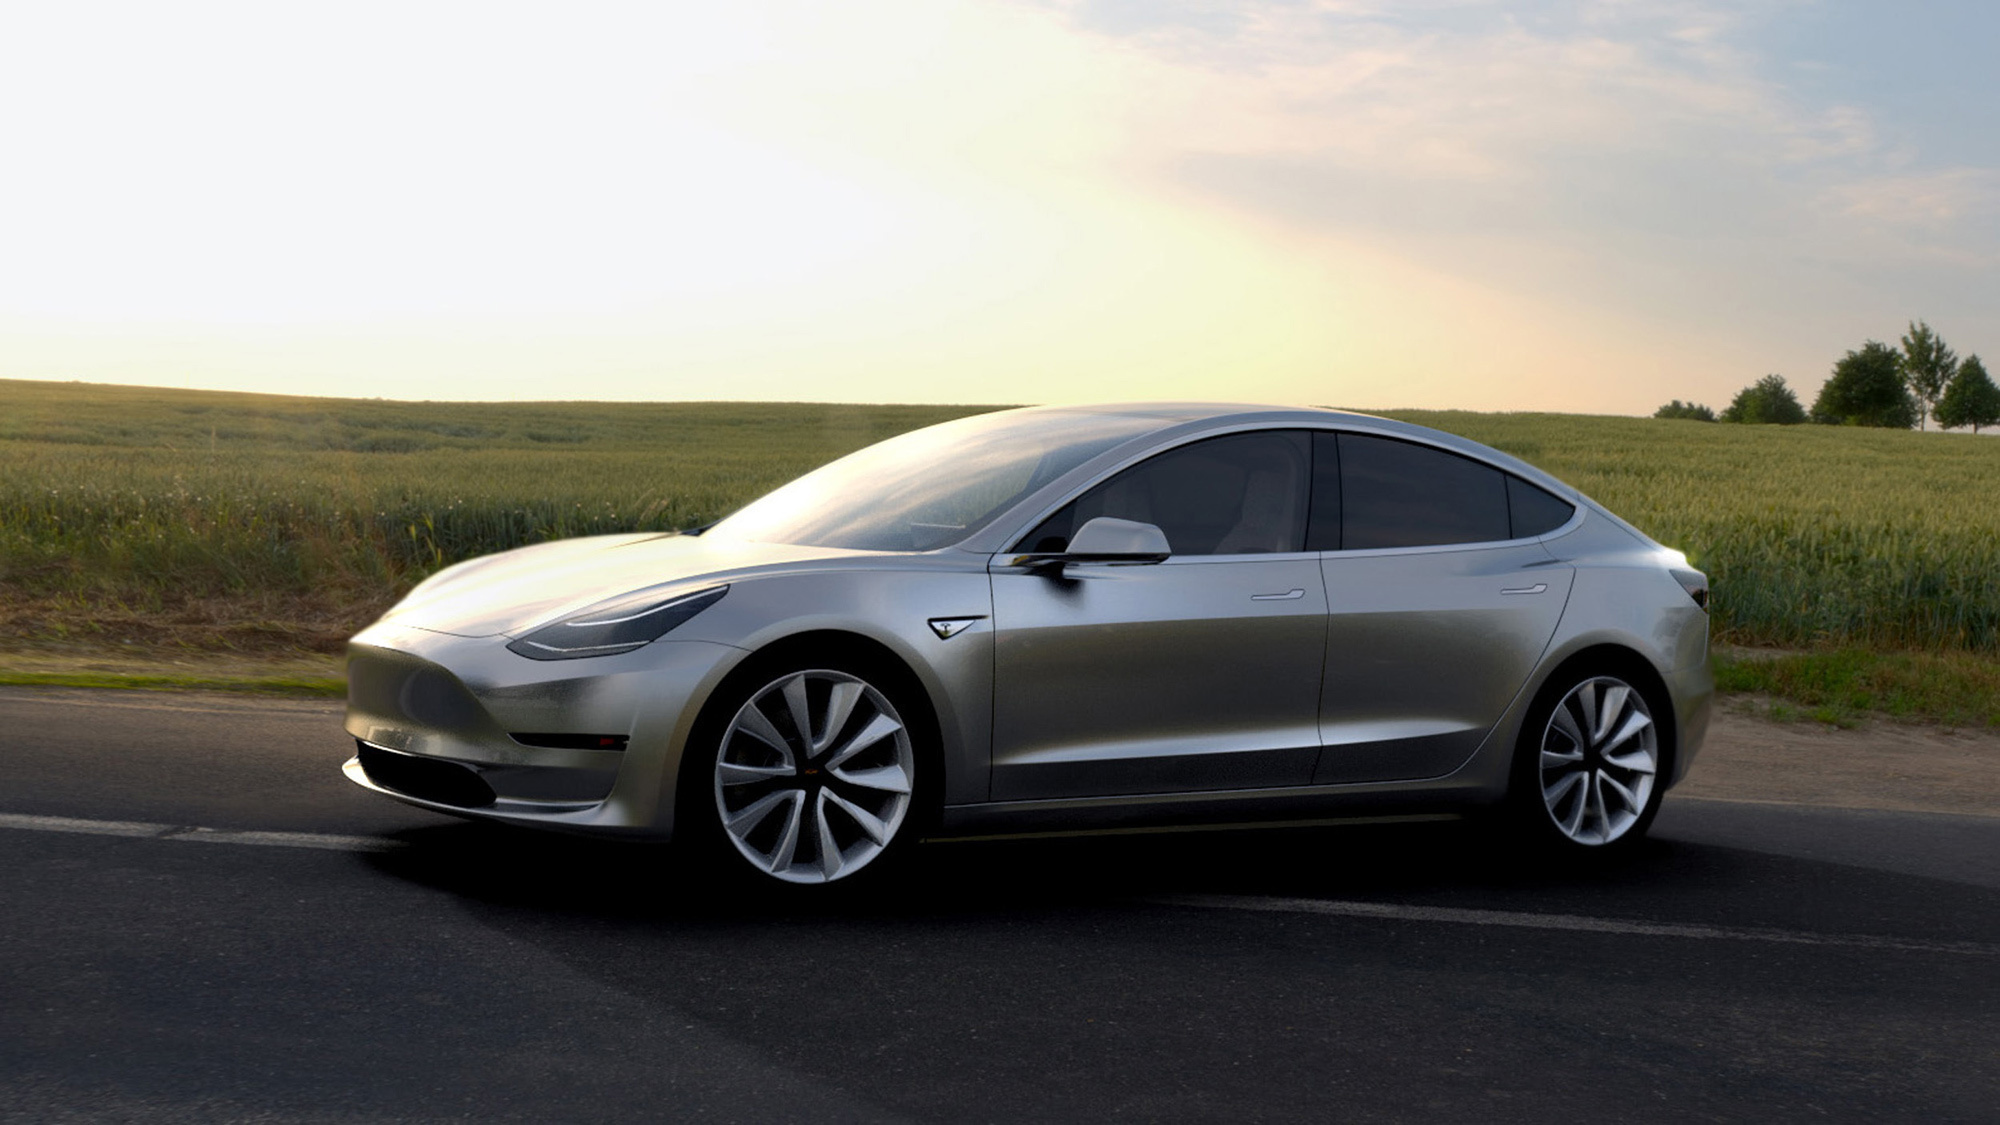 tesla model 3 images photos pictures backgrounds. Black Bedroom Furniture Sets. Home Design Ideas